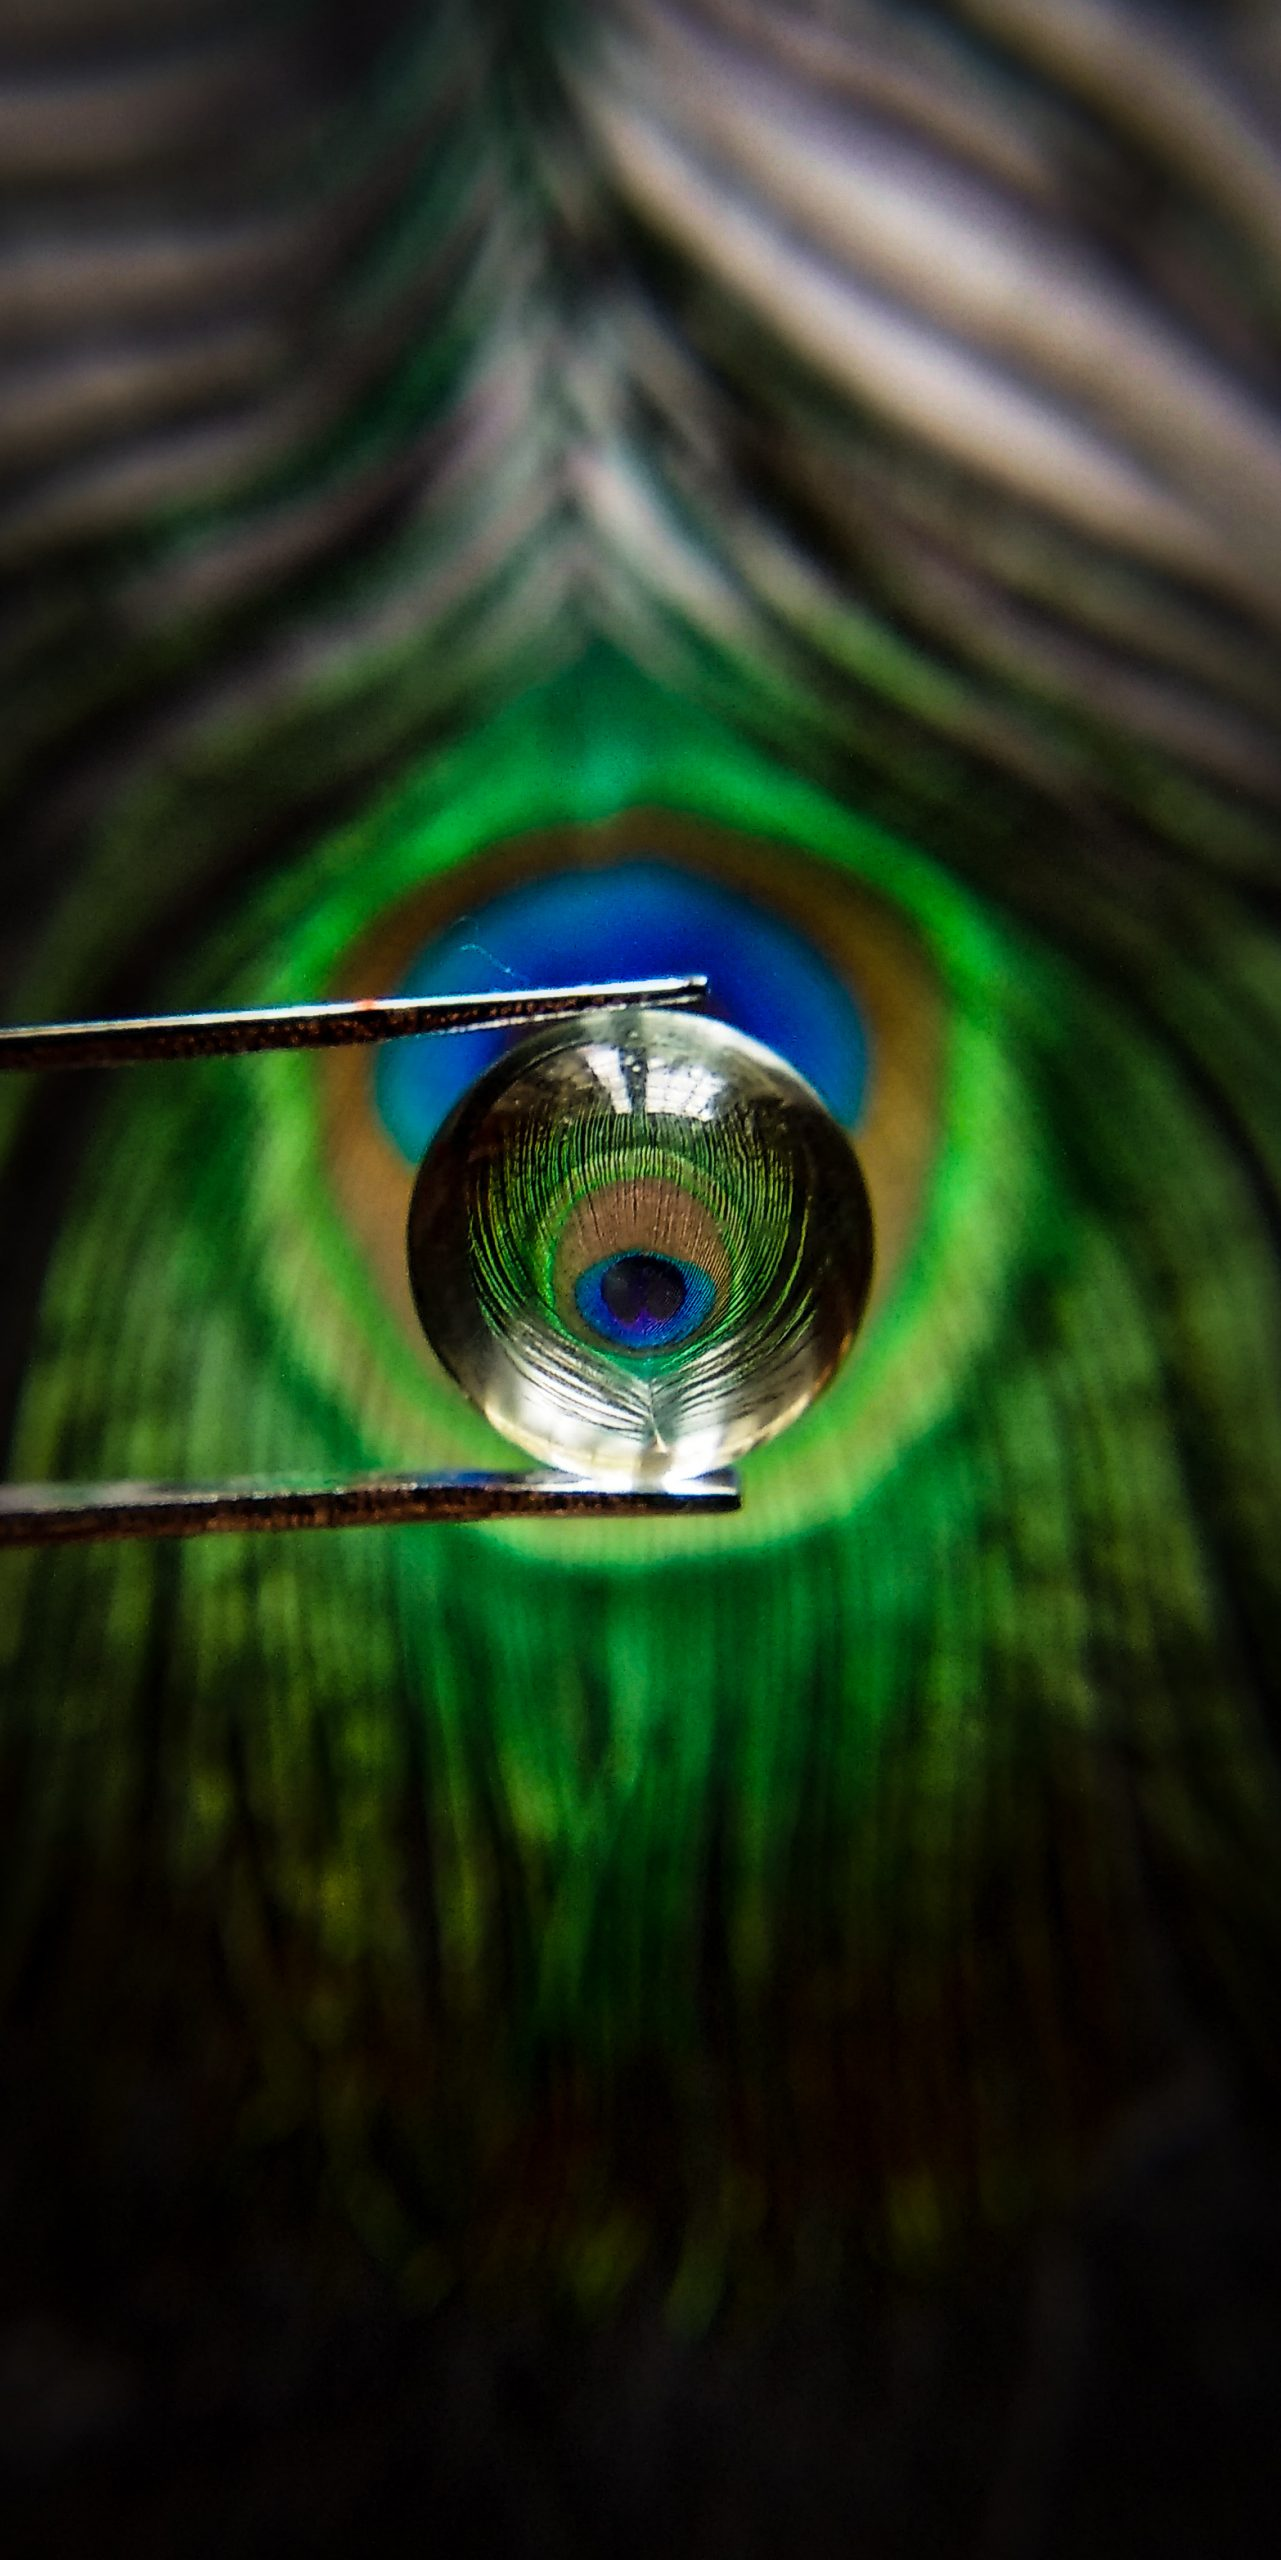 Reflection of a peacock feather